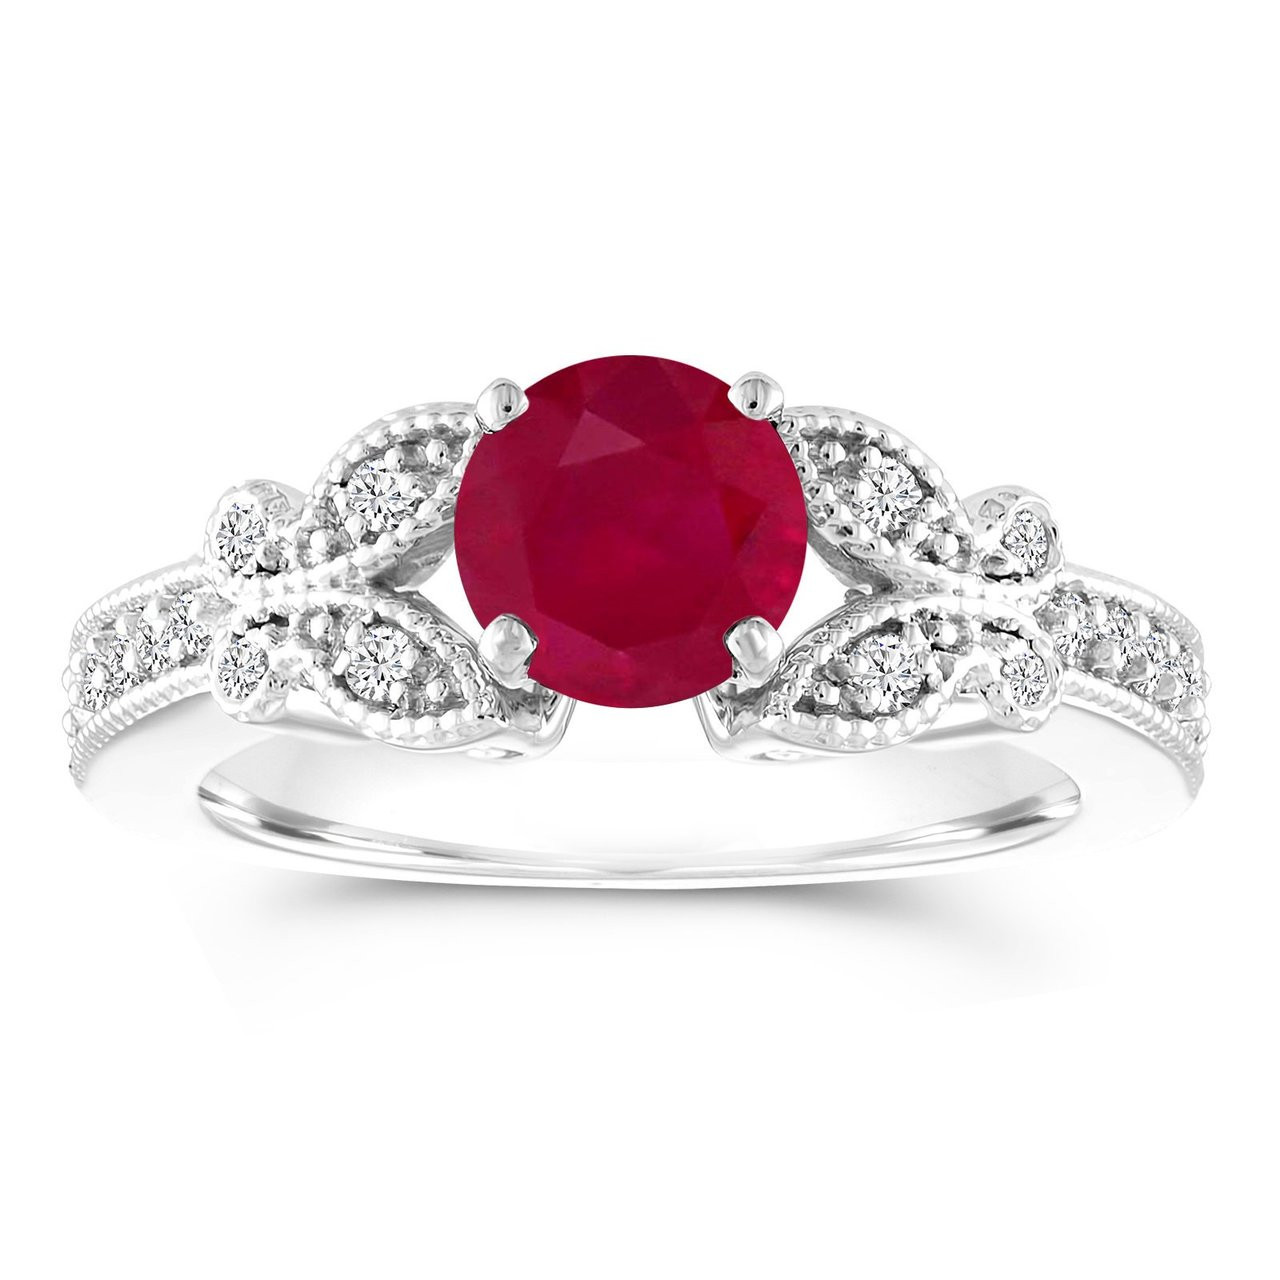 Ruby Wedding Rings.Butterfly Ruby Engagement Ring Ruby And Diamonds Wedding Ring Ruby Anniversary Ring 1 18 Carat 14k White Gold Certified Pave Unique